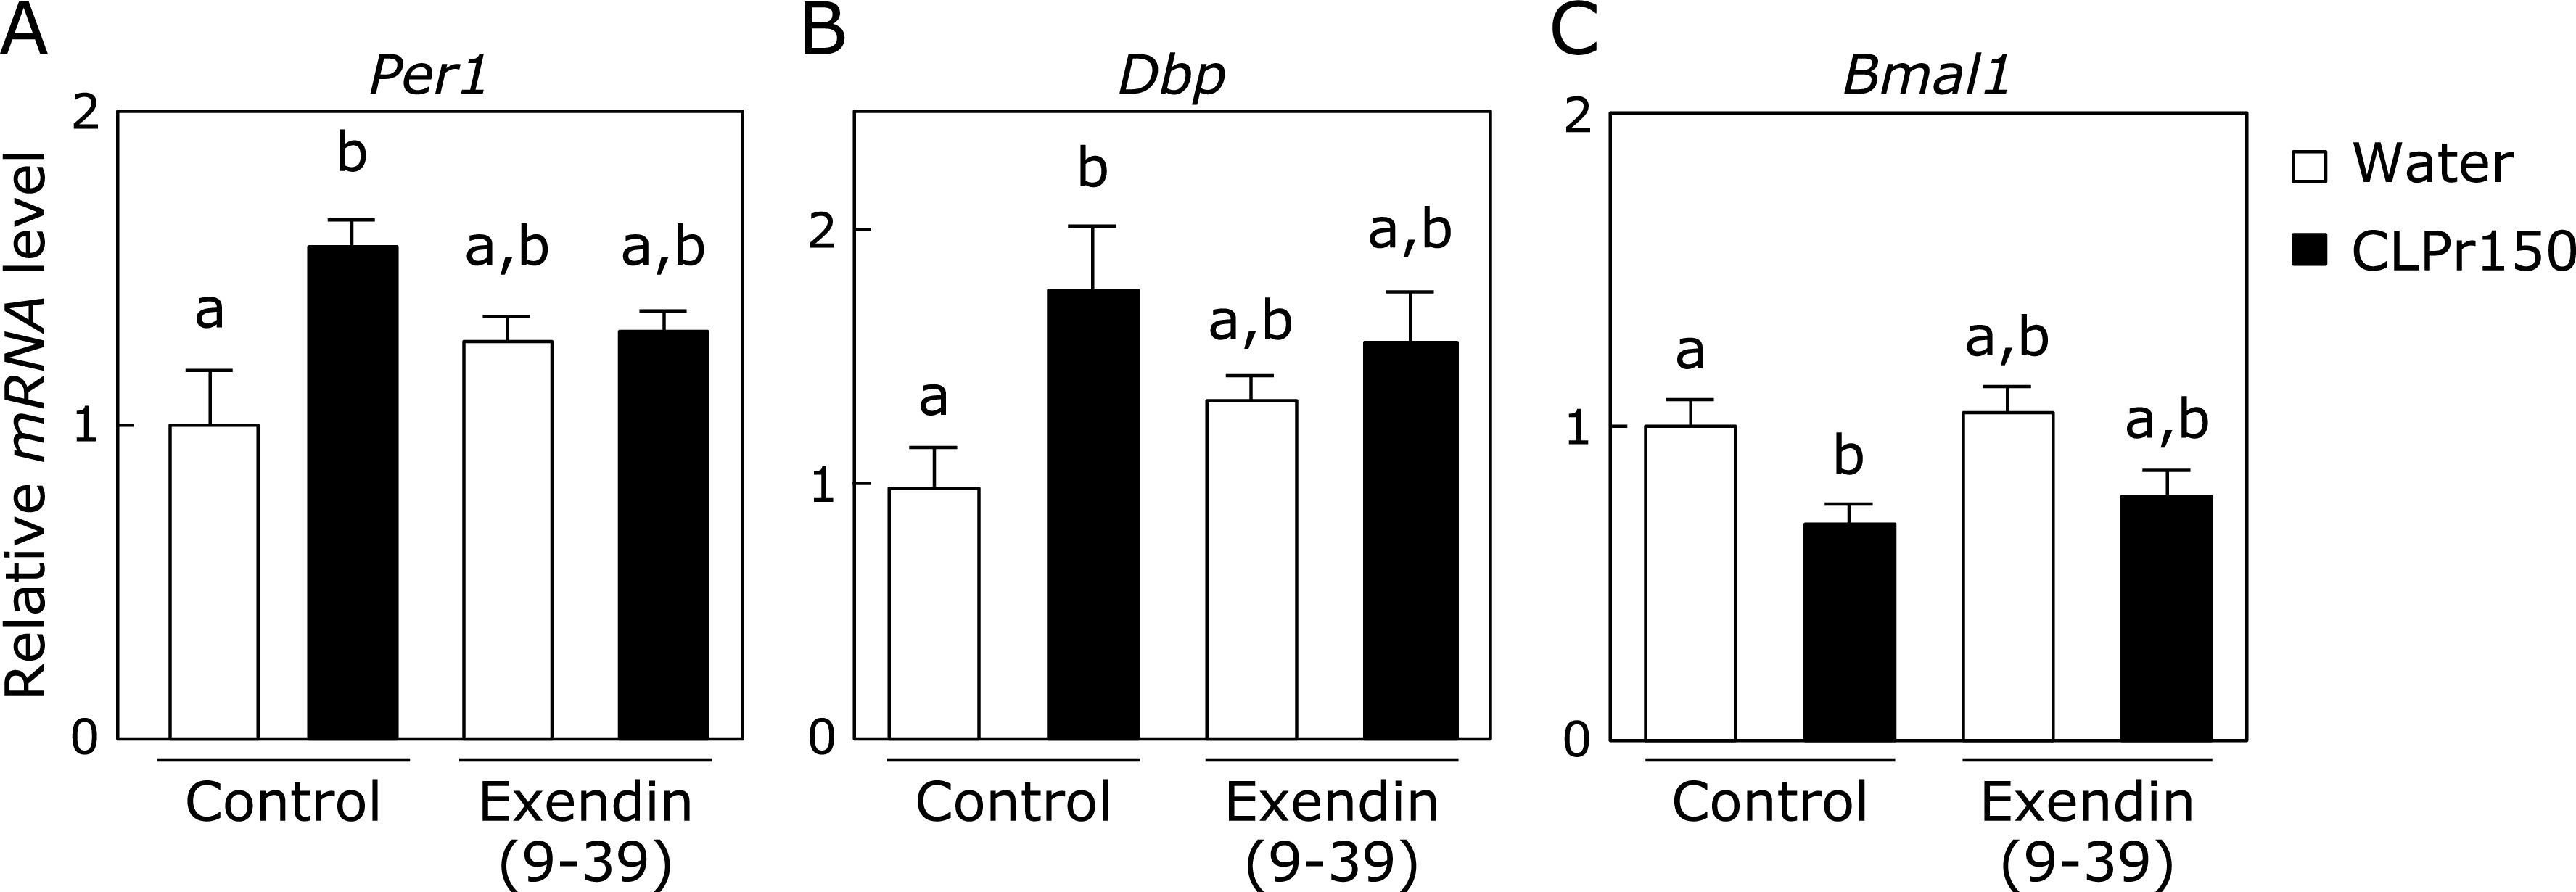 The effect of CLPr administration on the expression level of clock genes in the liver after pretreatment with GLP-1 receptor antagonist. Mice were orally administered CLPr at 150 mg/kg body weight or water (5.0 ml/kg body weight) at ZT3. Exendin (9-39), a GLP-1 receptor antagonist, was pre-injected to the mice at 200 nmol/kg body weight 5 min before the CLPr administration. The liver was collected 3 h after the CLPr administration and the expression of Per1 (A), Dbp (B) and Bmal1 (C) was measured by RT-PCR. After the expression level of mRNA was normalized by that of gapdh , the relative expression level was shown. Data are represented as the means ± SE ( n = 5). Different letters indicate significant differences ( p